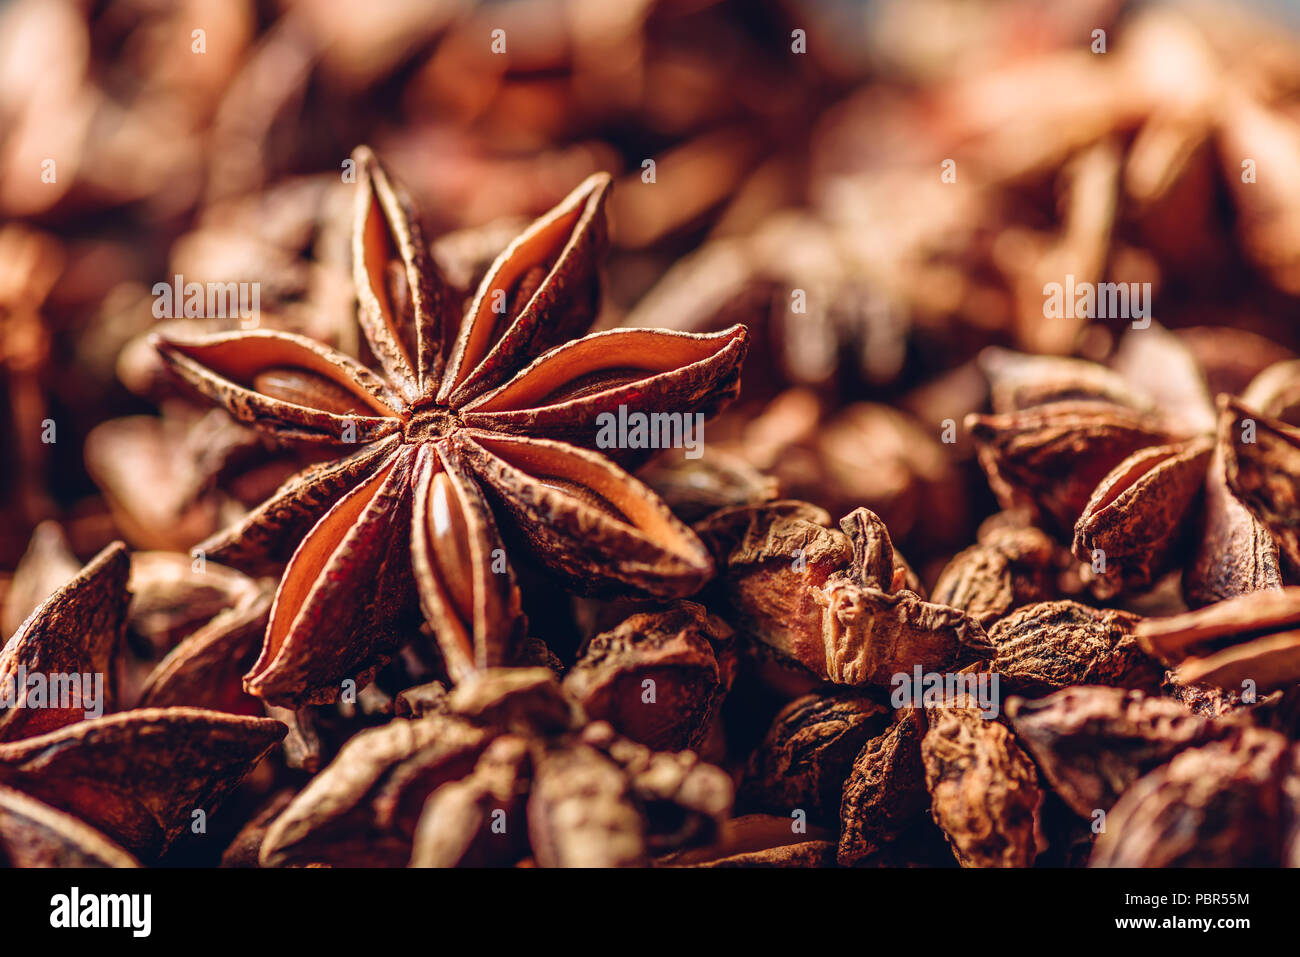 Background of Star Anise Fruits and Seeds. - Stock Image